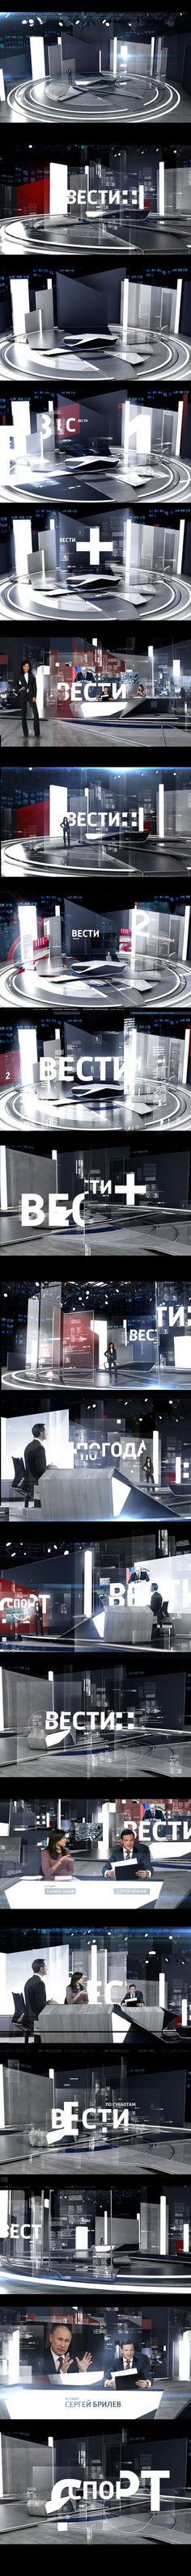 RUSSIA_1 channel NEWS STUDIO by egor antonov, via Behance: